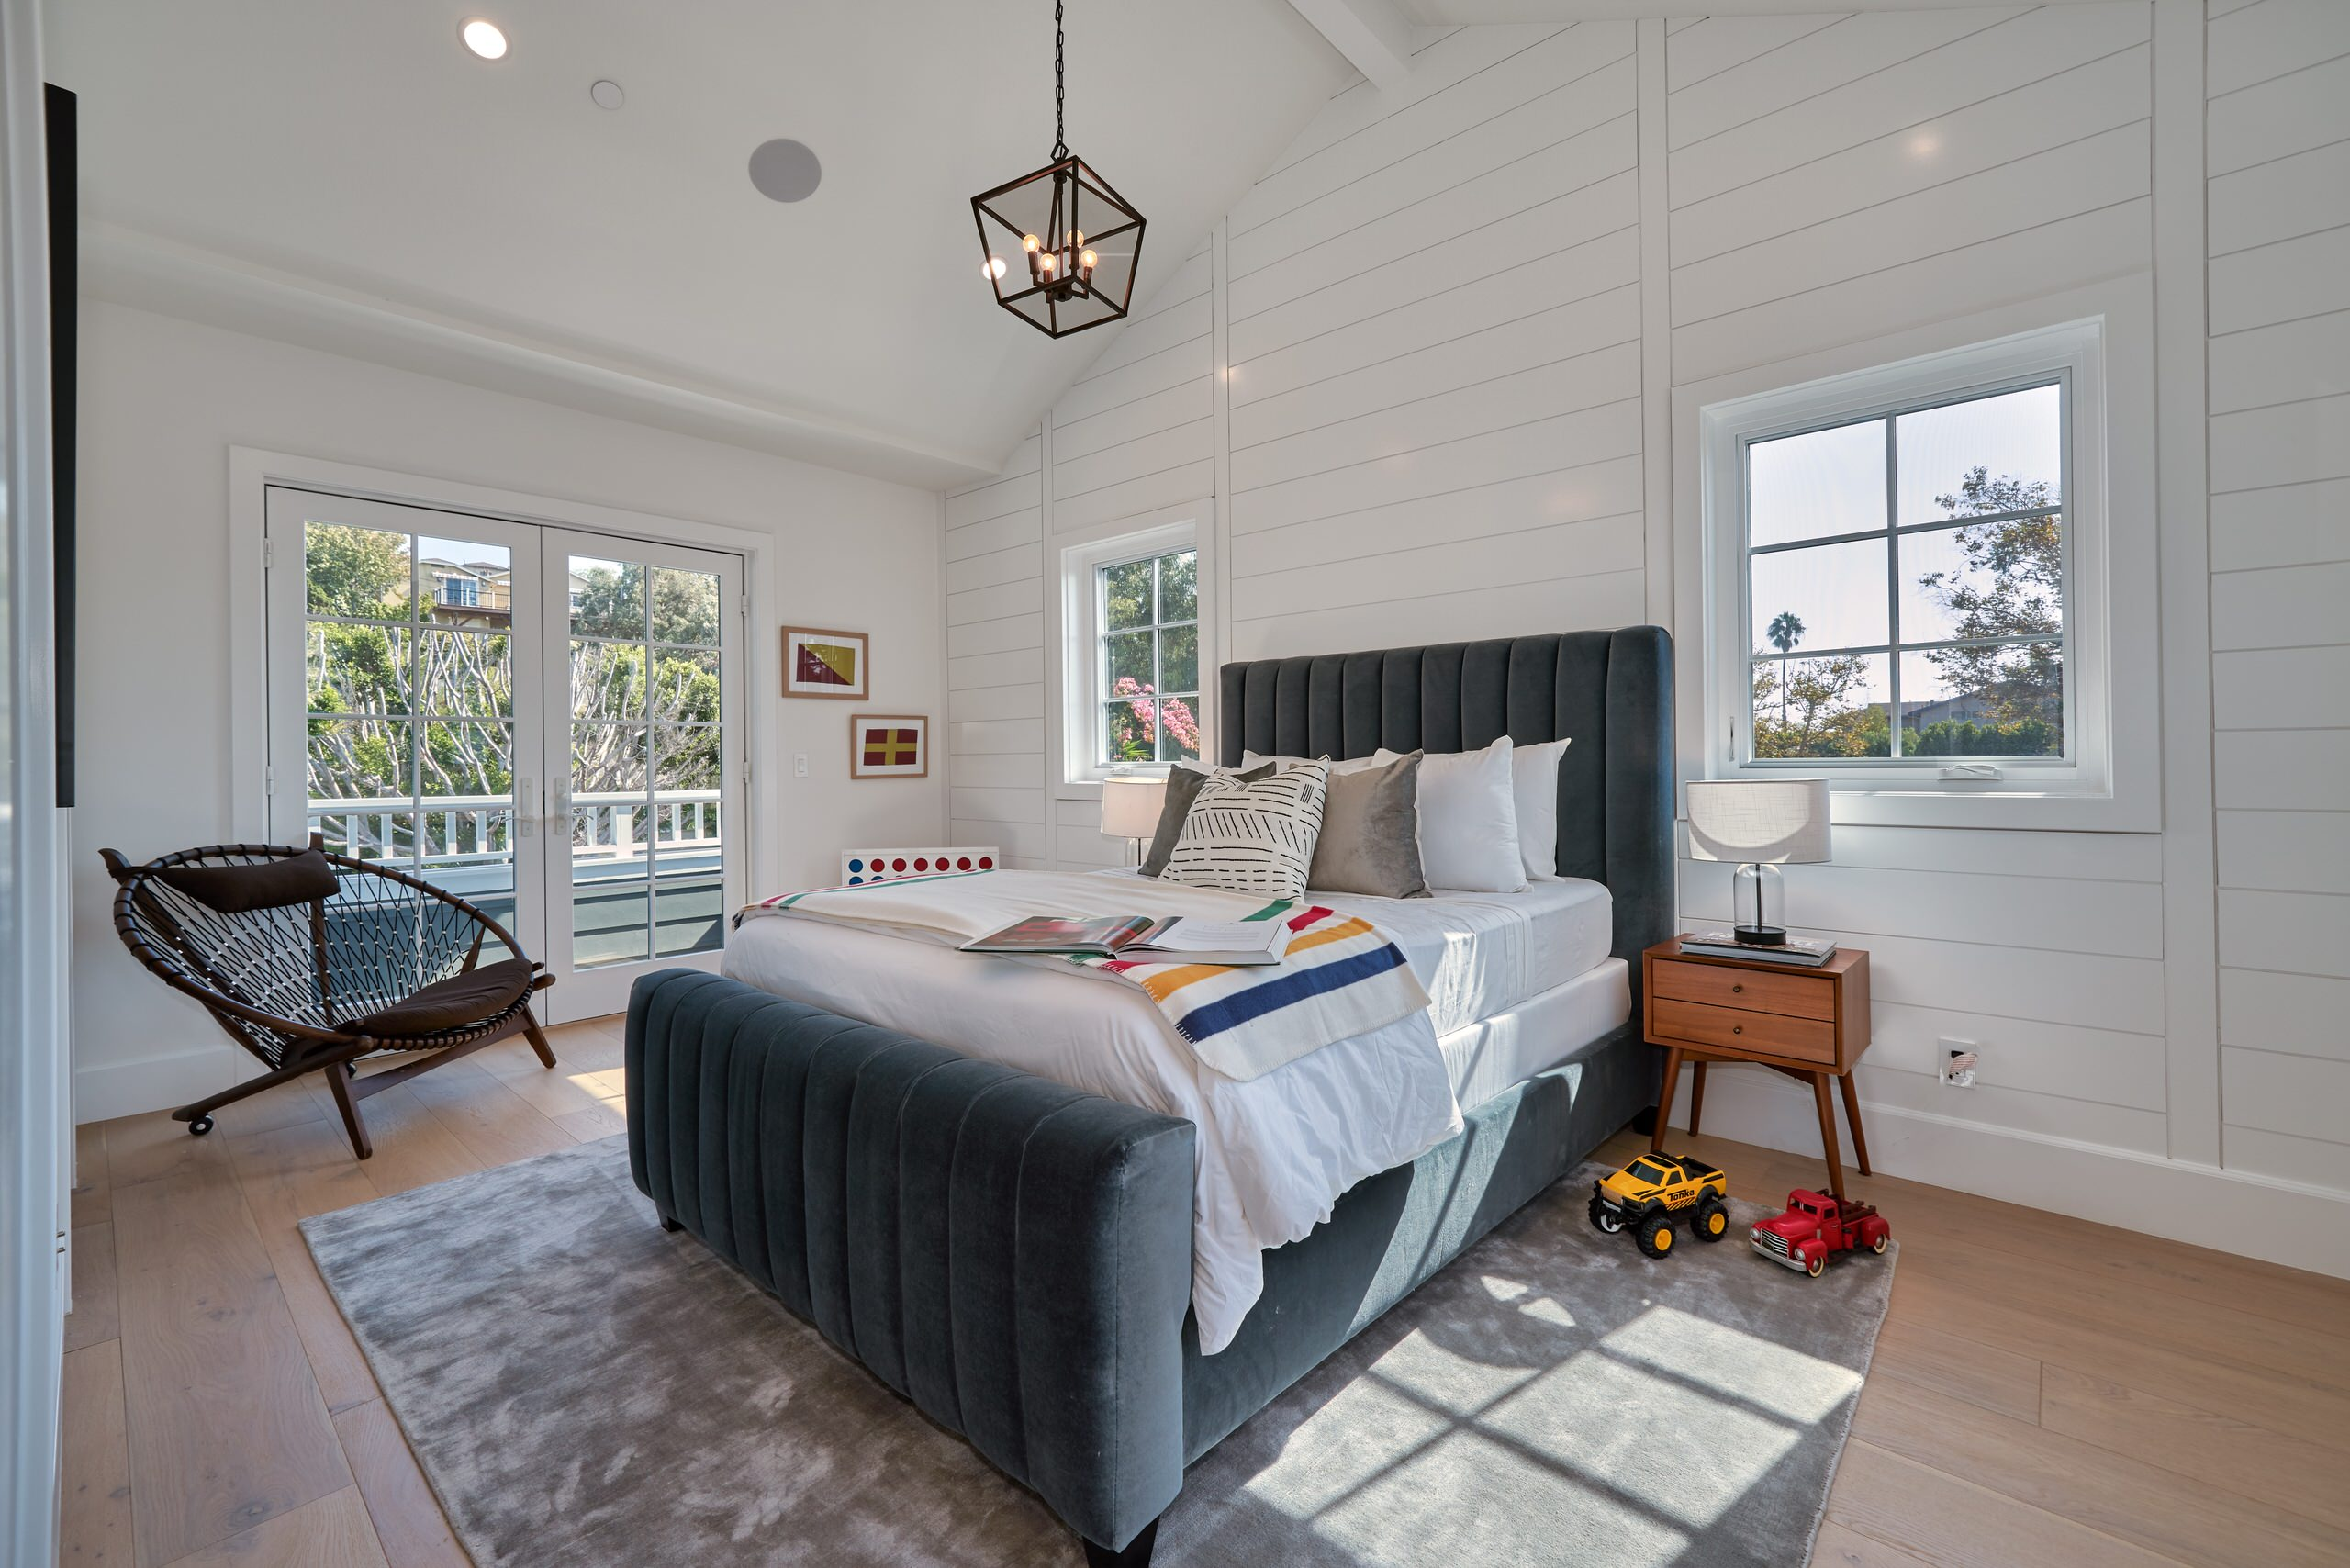 75 Beautiful Contemporary Guest Bedroom Pictures Ideas February 2021 Houzz